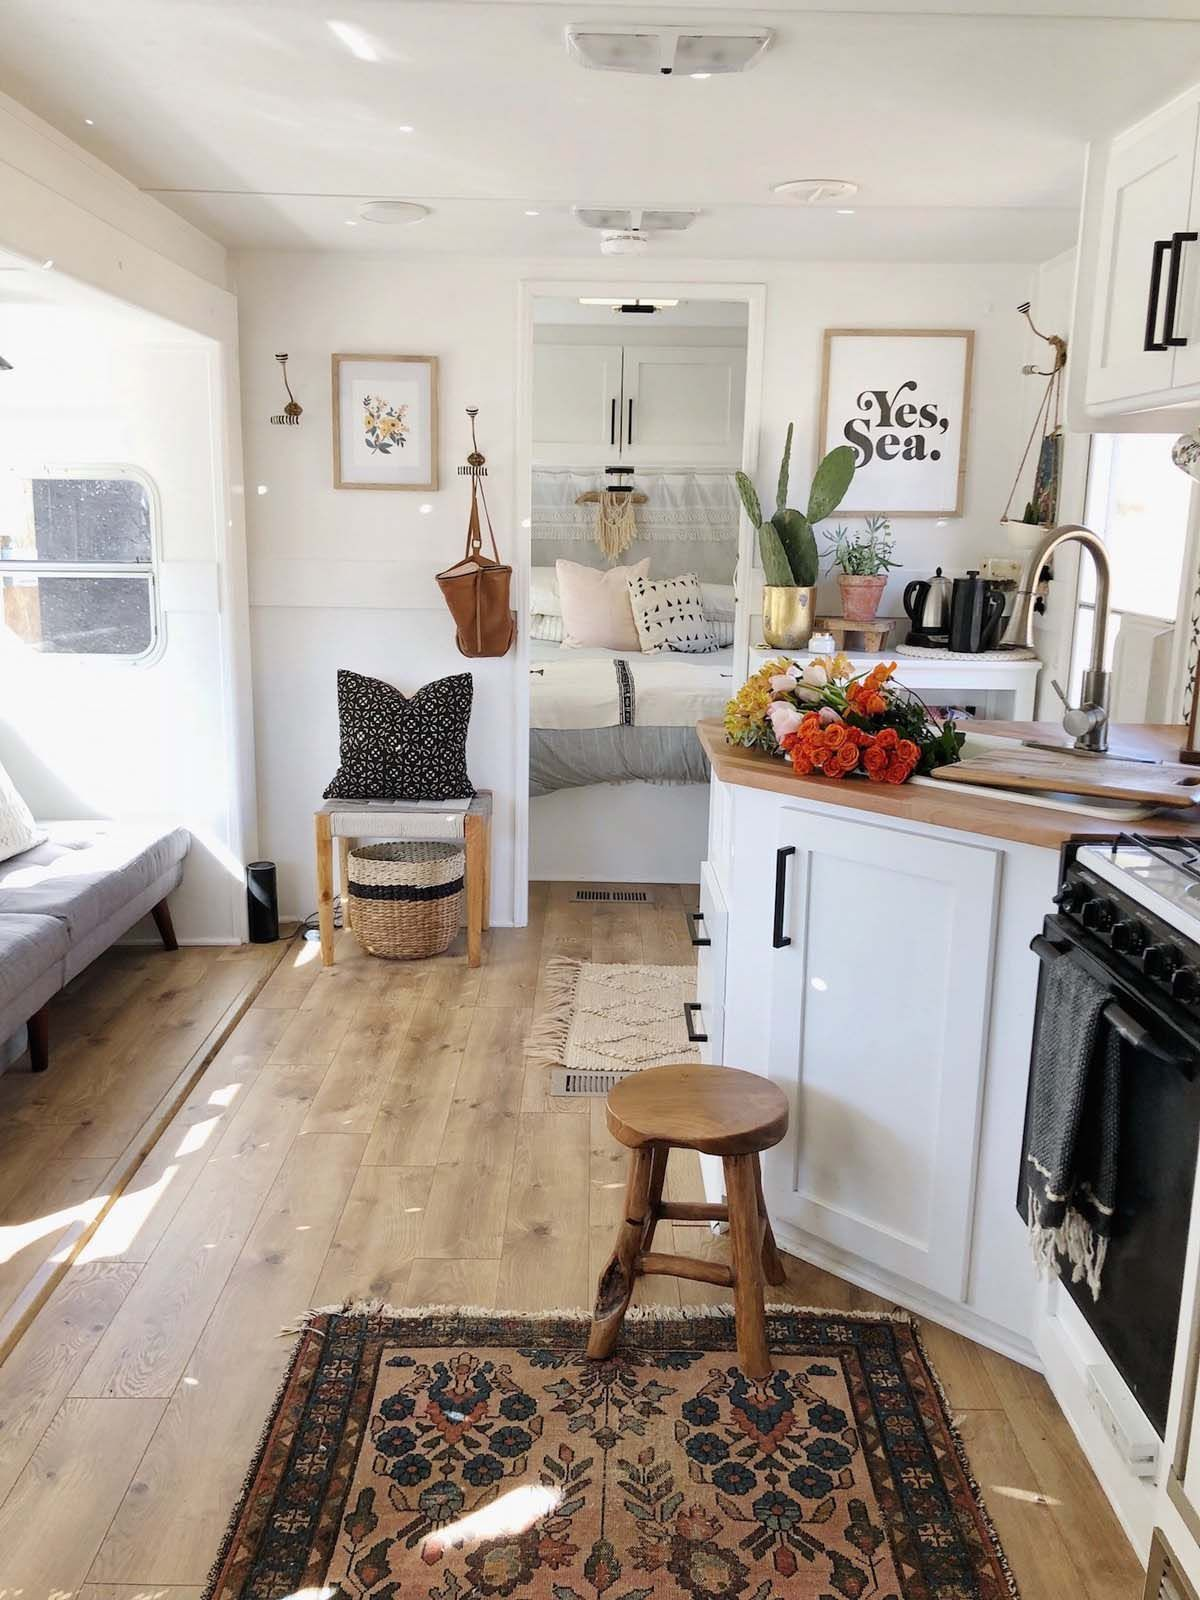 Living The Simple Life In A Fully Renovated 120 Square Foot Camper Cozy House Remodeled Campers Home